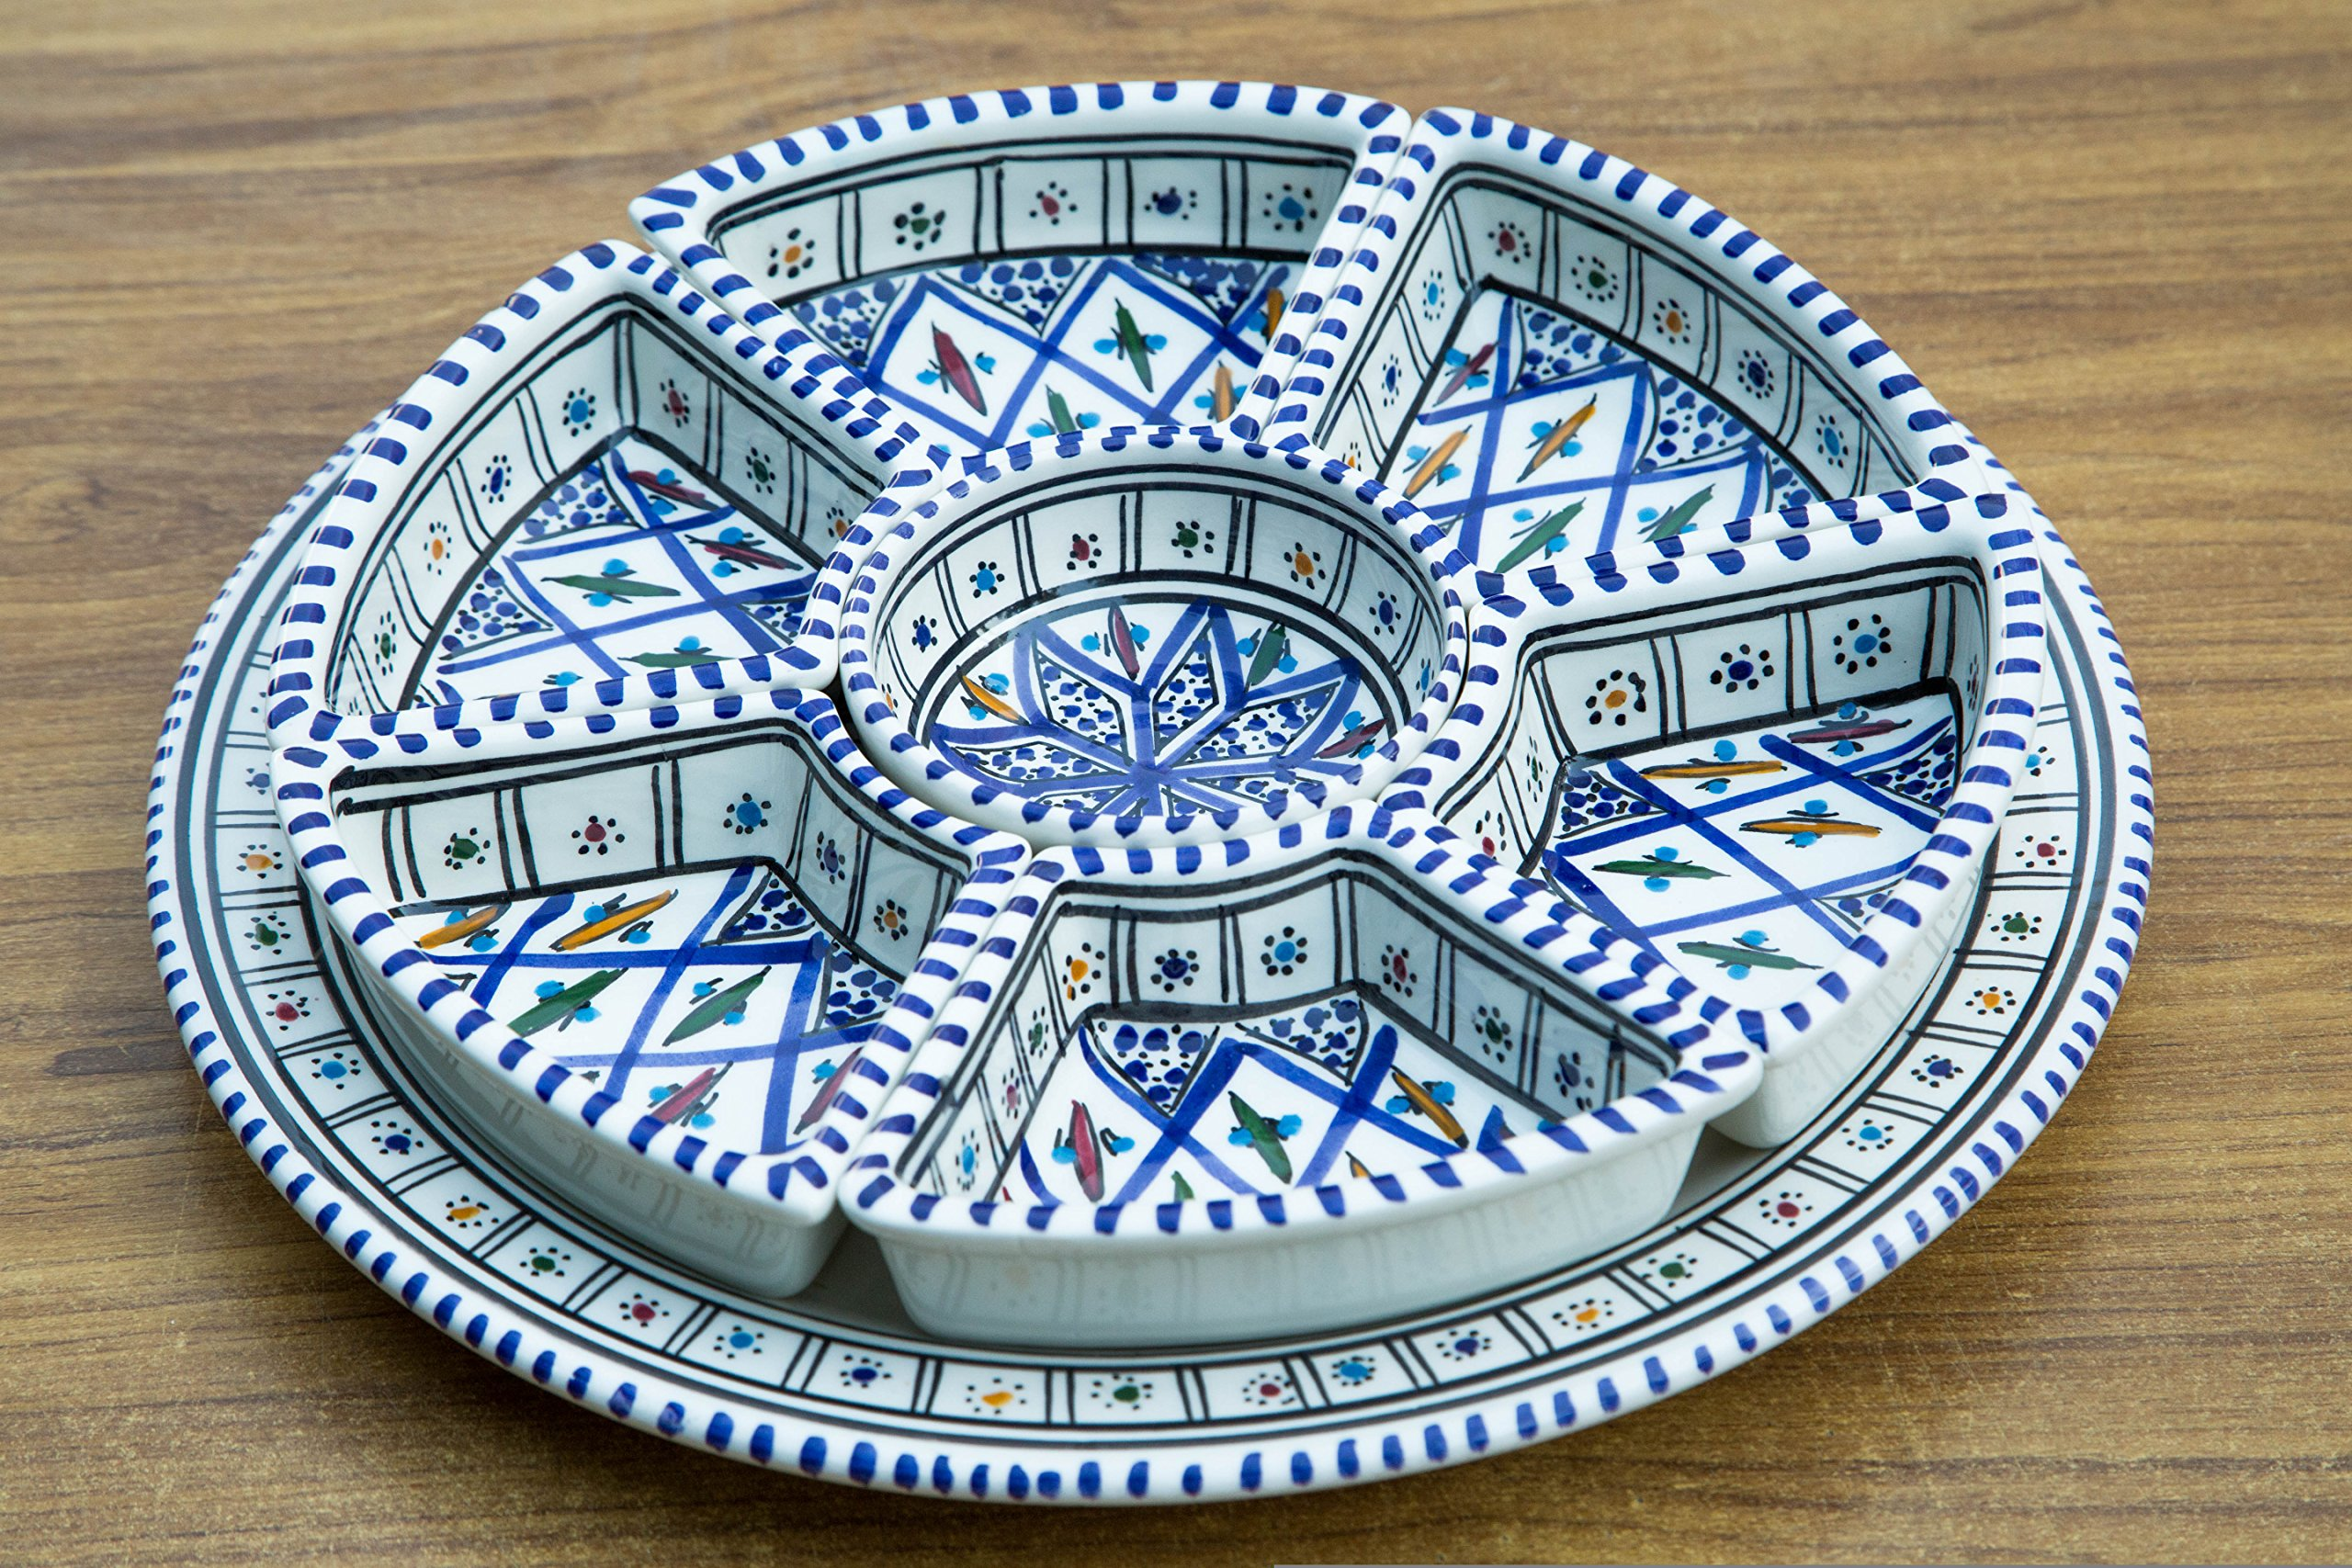 Blue Round Dippers, 8 Pieces of Ceramic Dipping and Serving Plates Handmade, Hand-painted - Gifts, Wedding Gifts